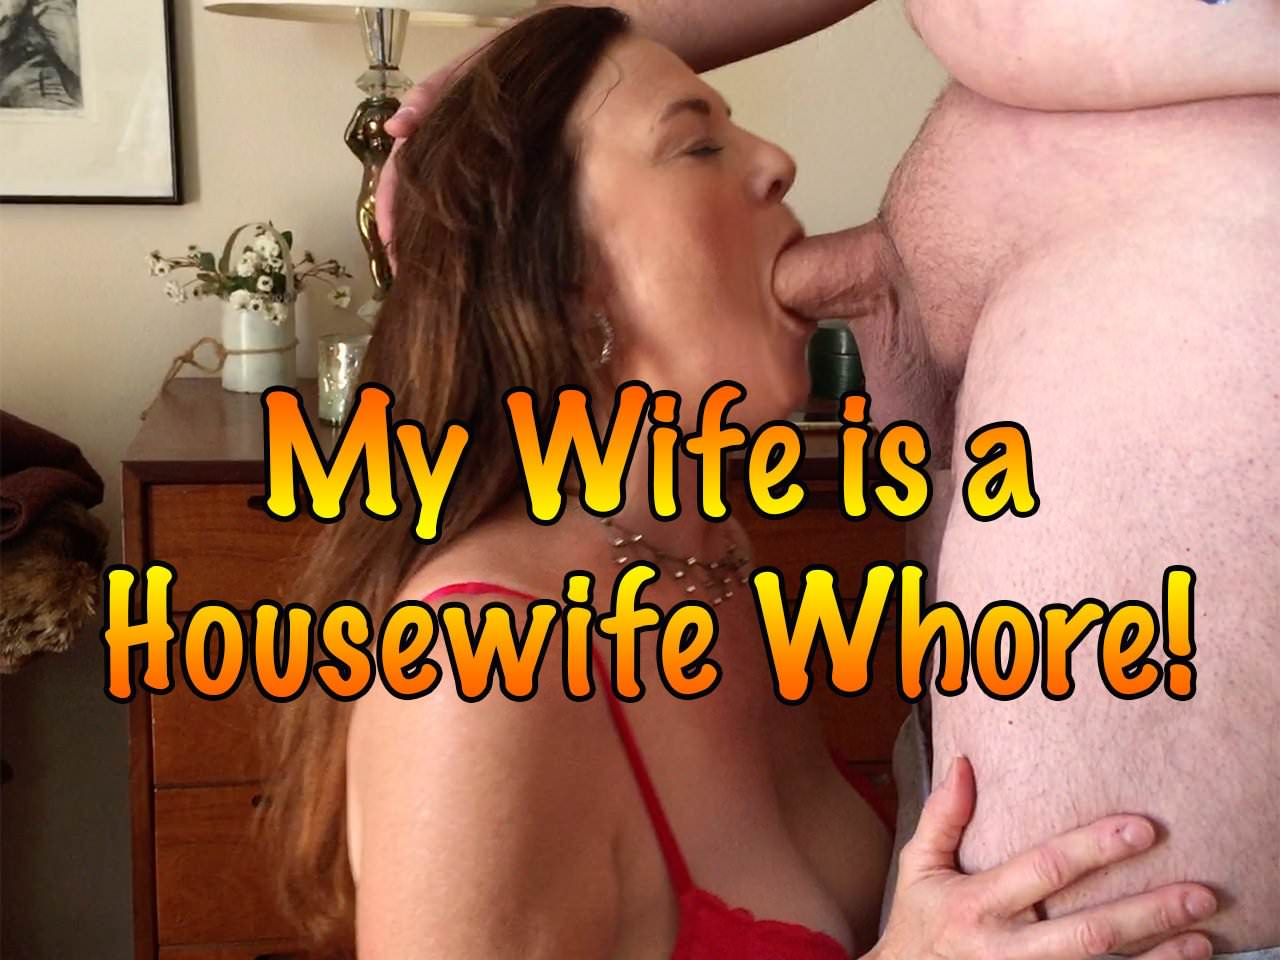 Free wifey's world porn moviews